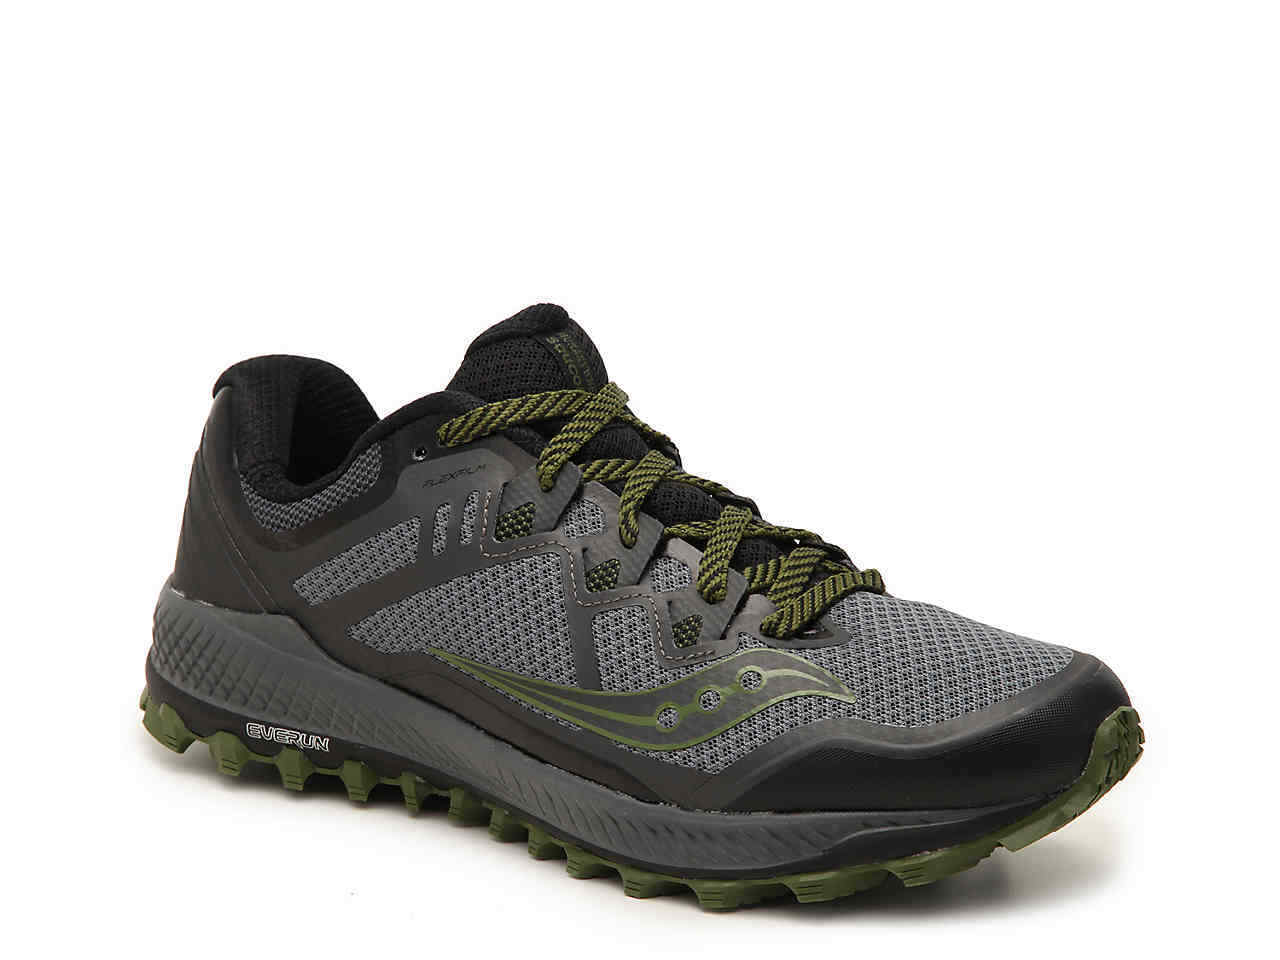 865486bb Saucony Peregrine 8 Men's Running Shoes Grey/Black/Green Size 12 M